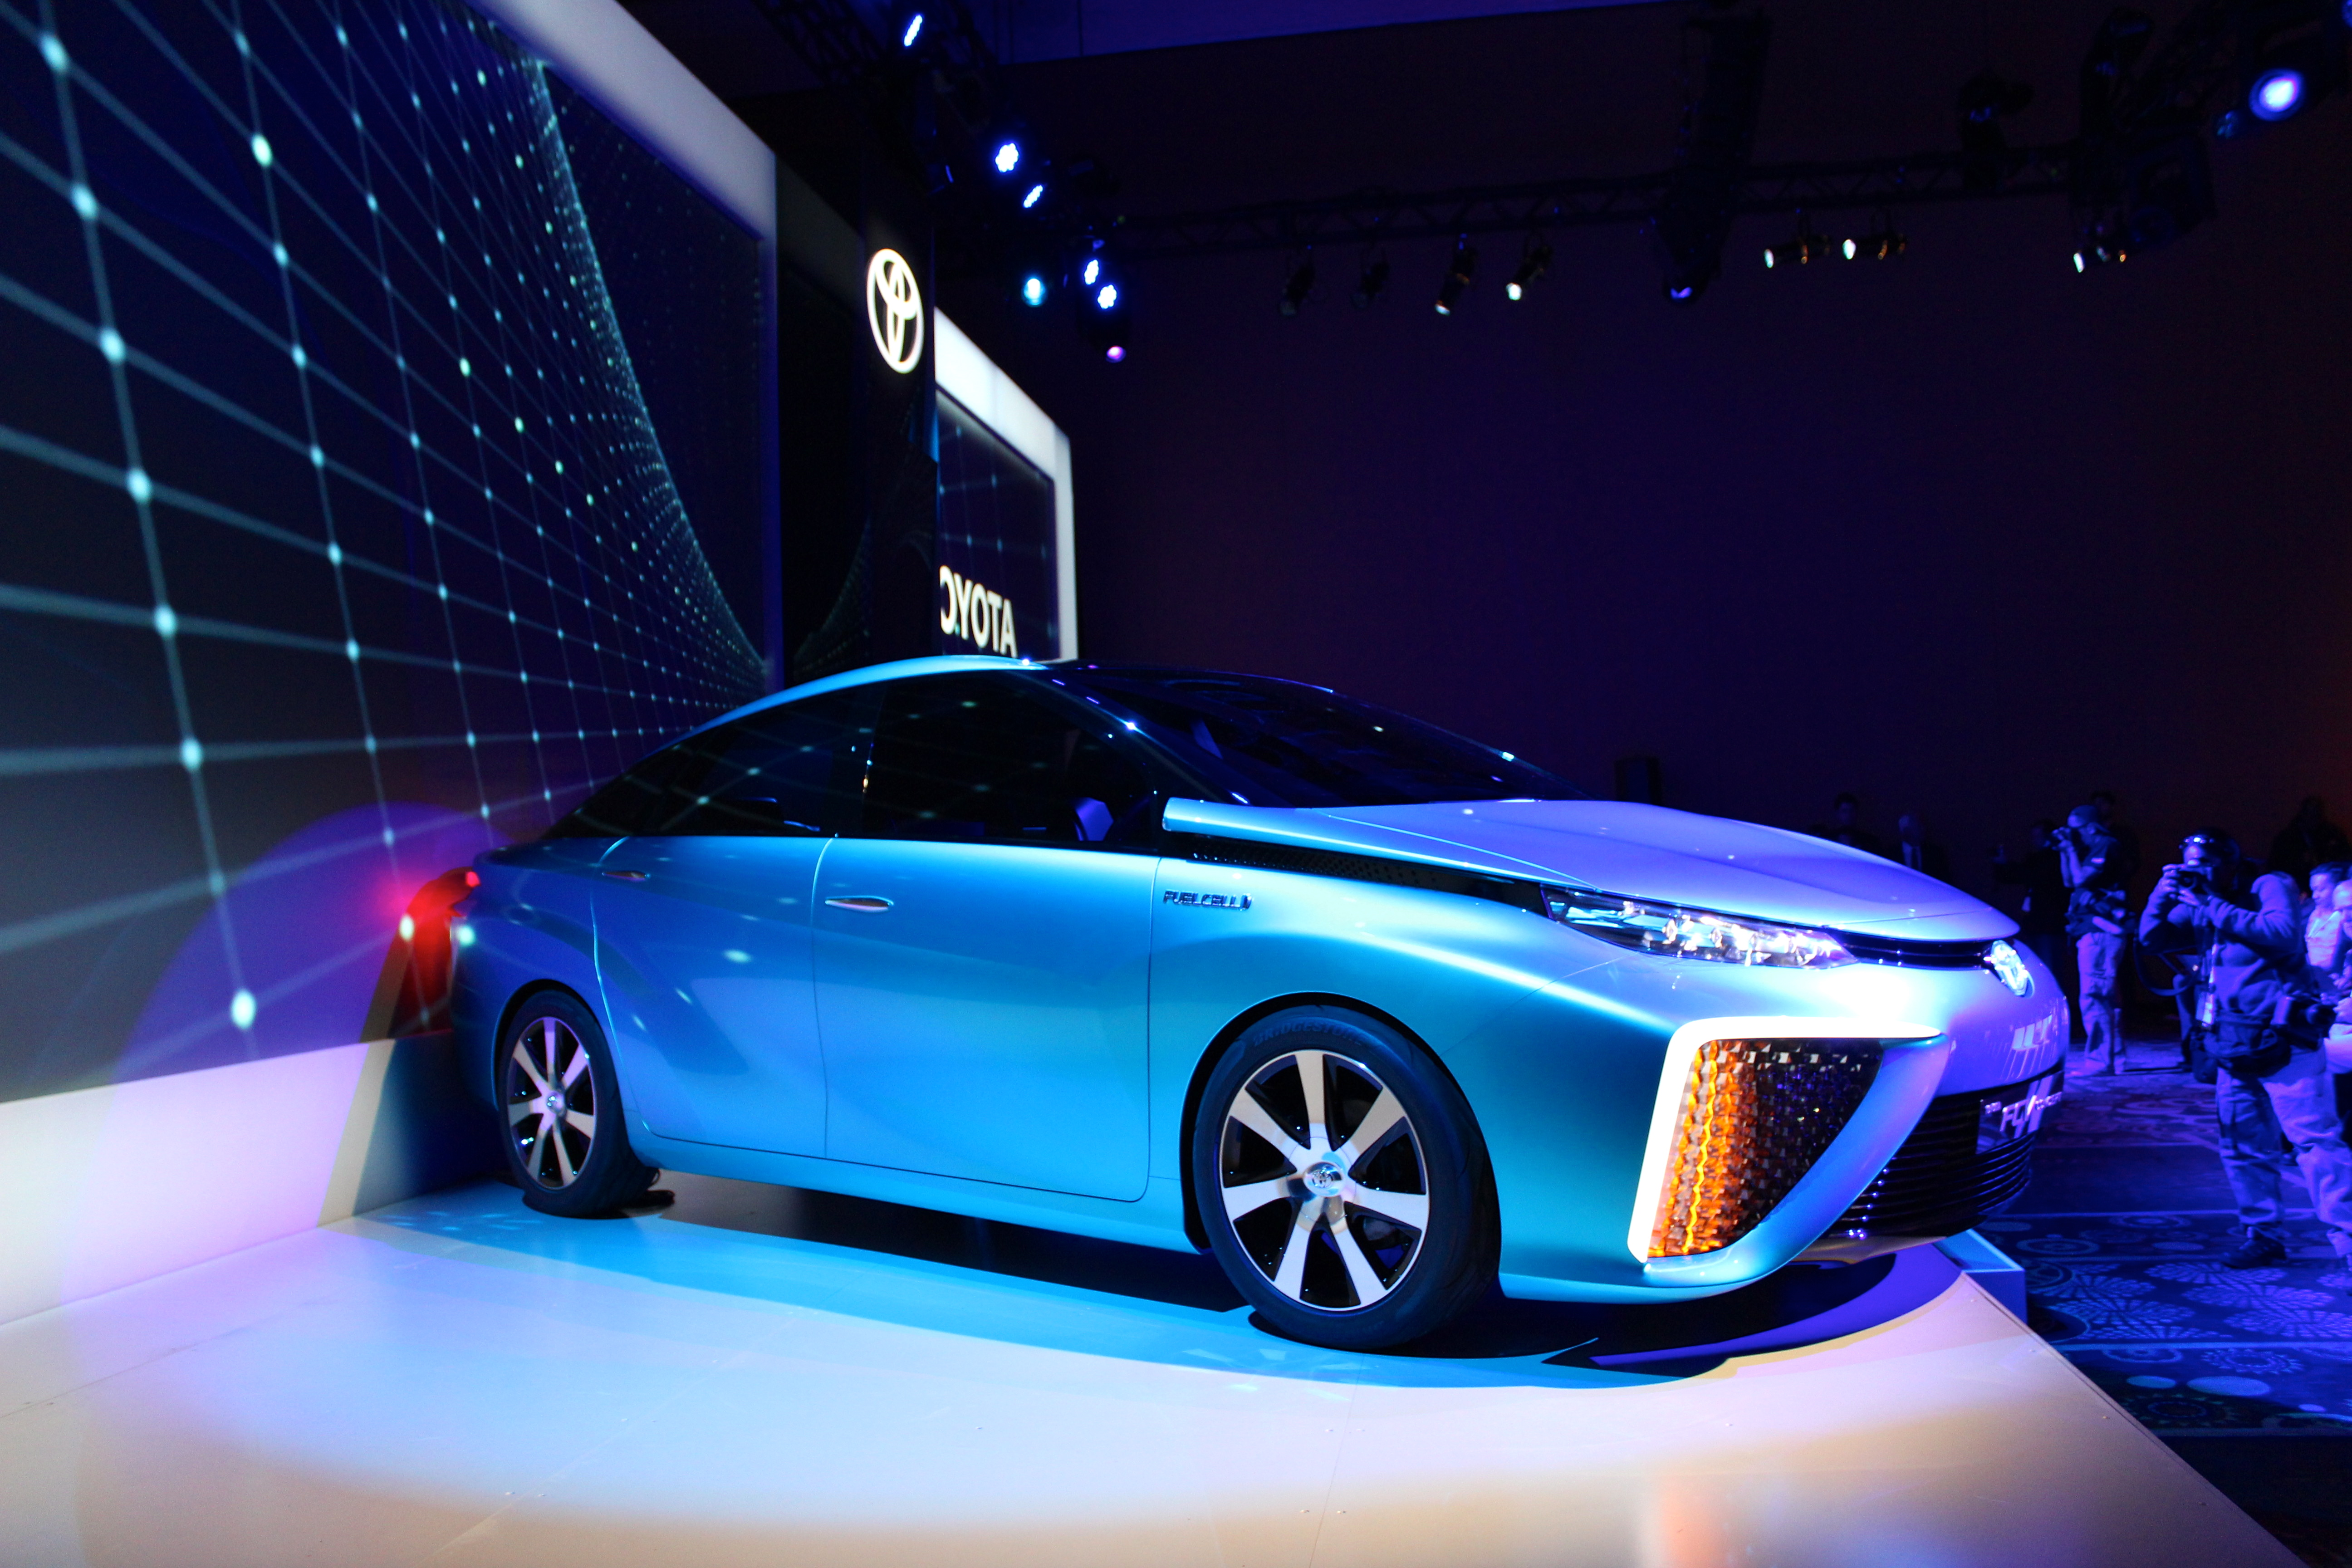 How Toyota's hydrogen fuel-cell cars could someday provide power to